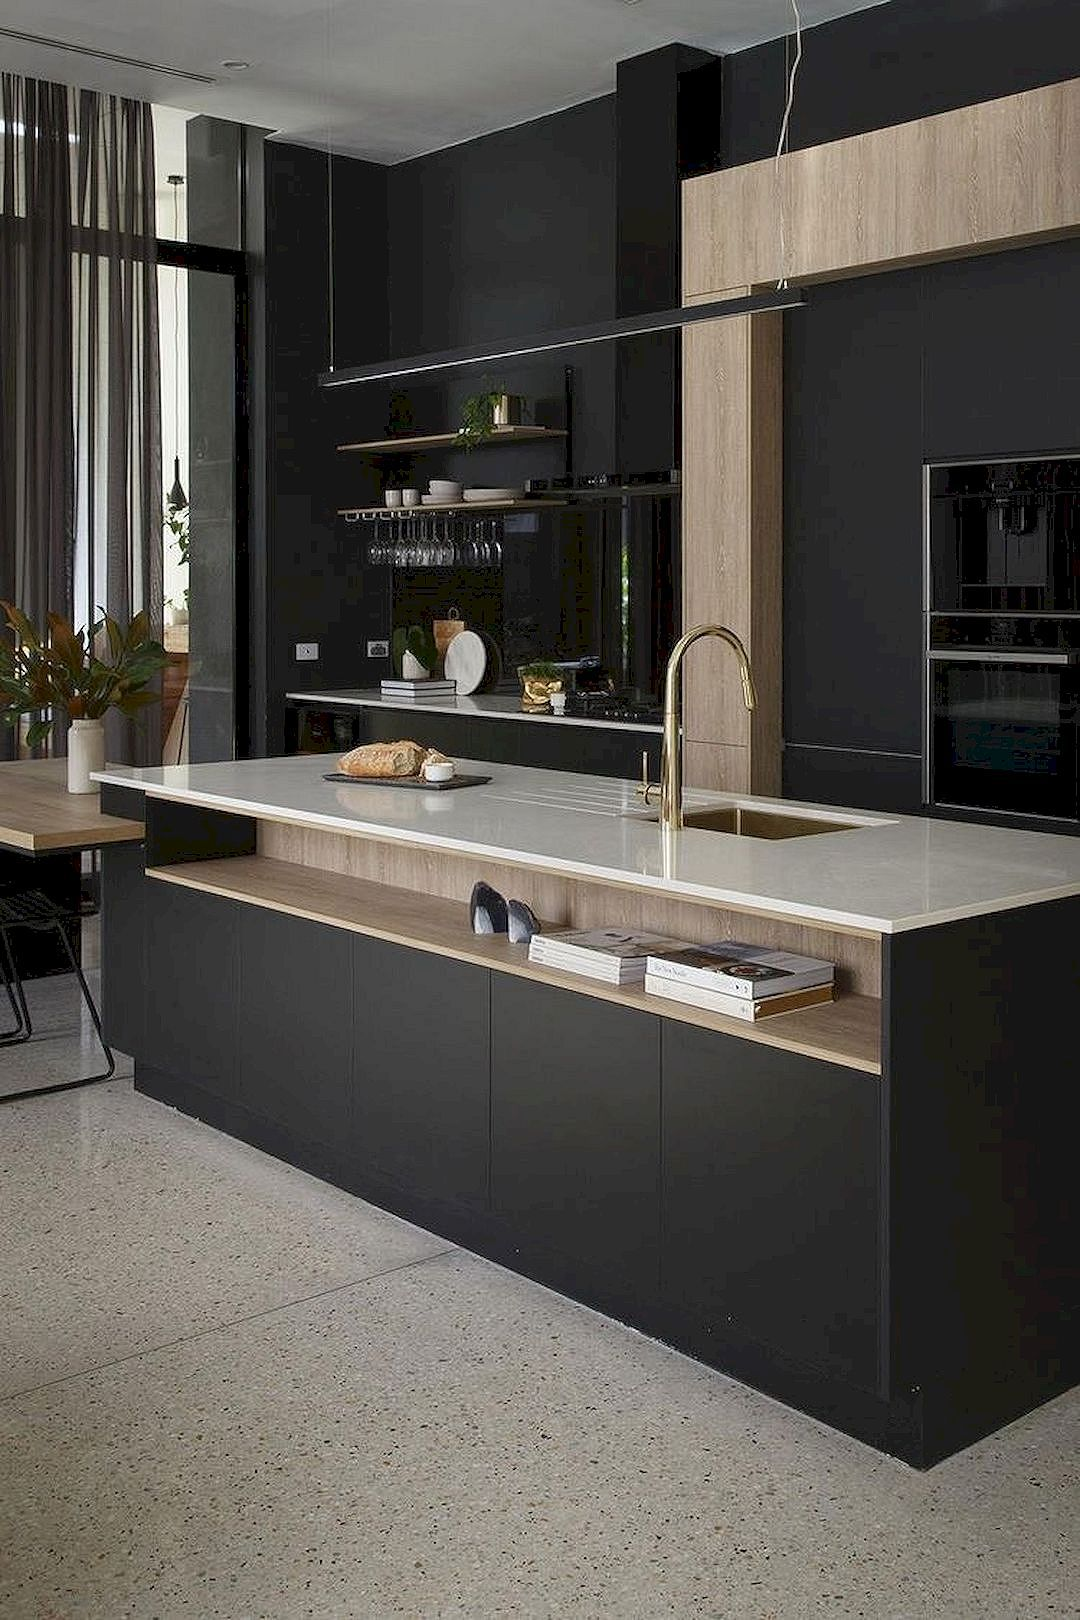 12 nice ideas for your modern kitchen design modern kitchen inspiration modern kitchen. Black Bedroom Furniture Sets. Home Design Ideas